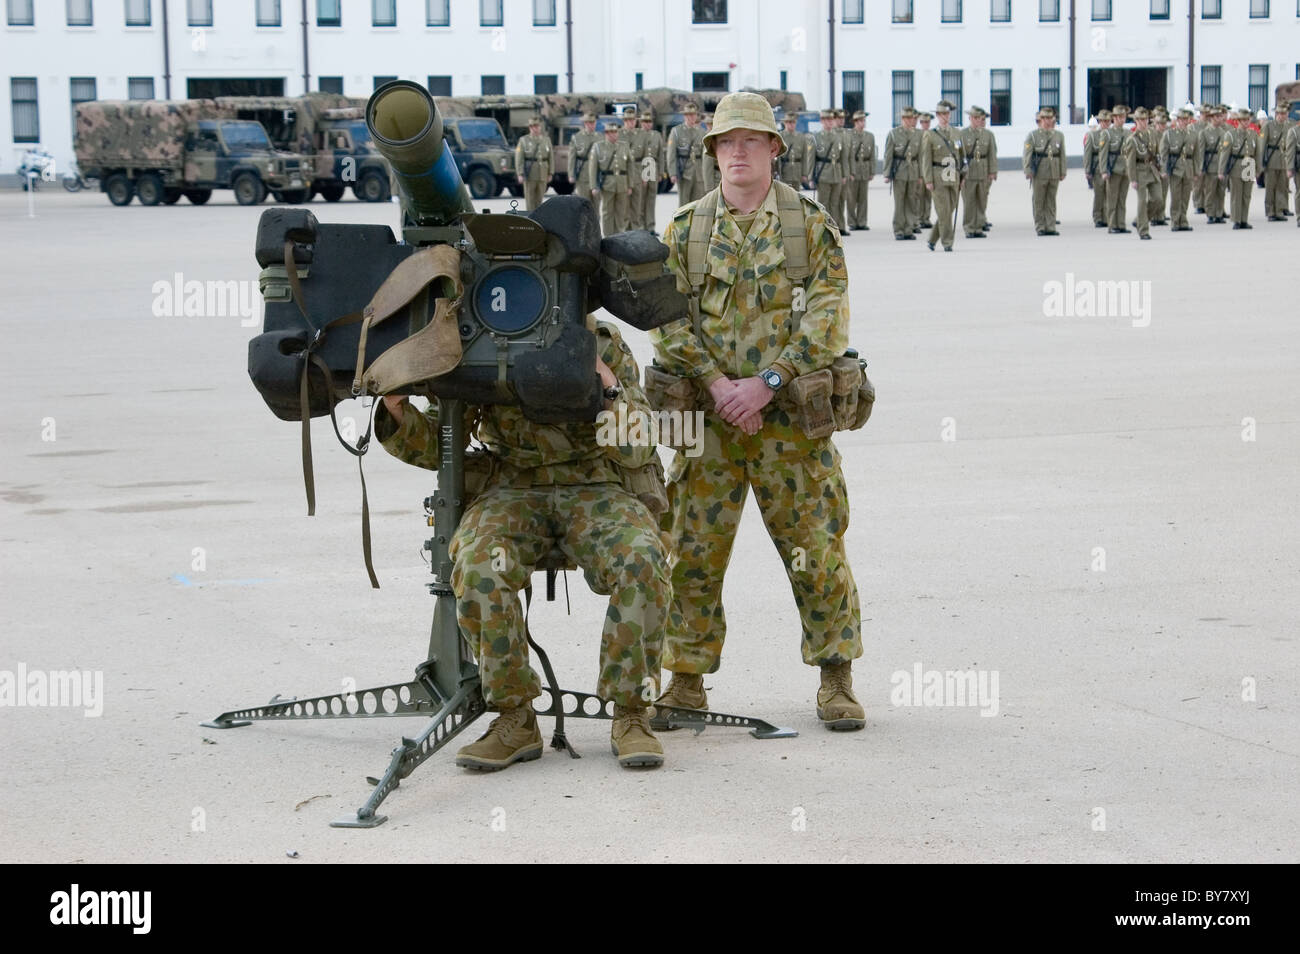 Australian Army personnel on parade and exercises, Torrens Parade Ground, Adelaide, South Australia Stock Photo